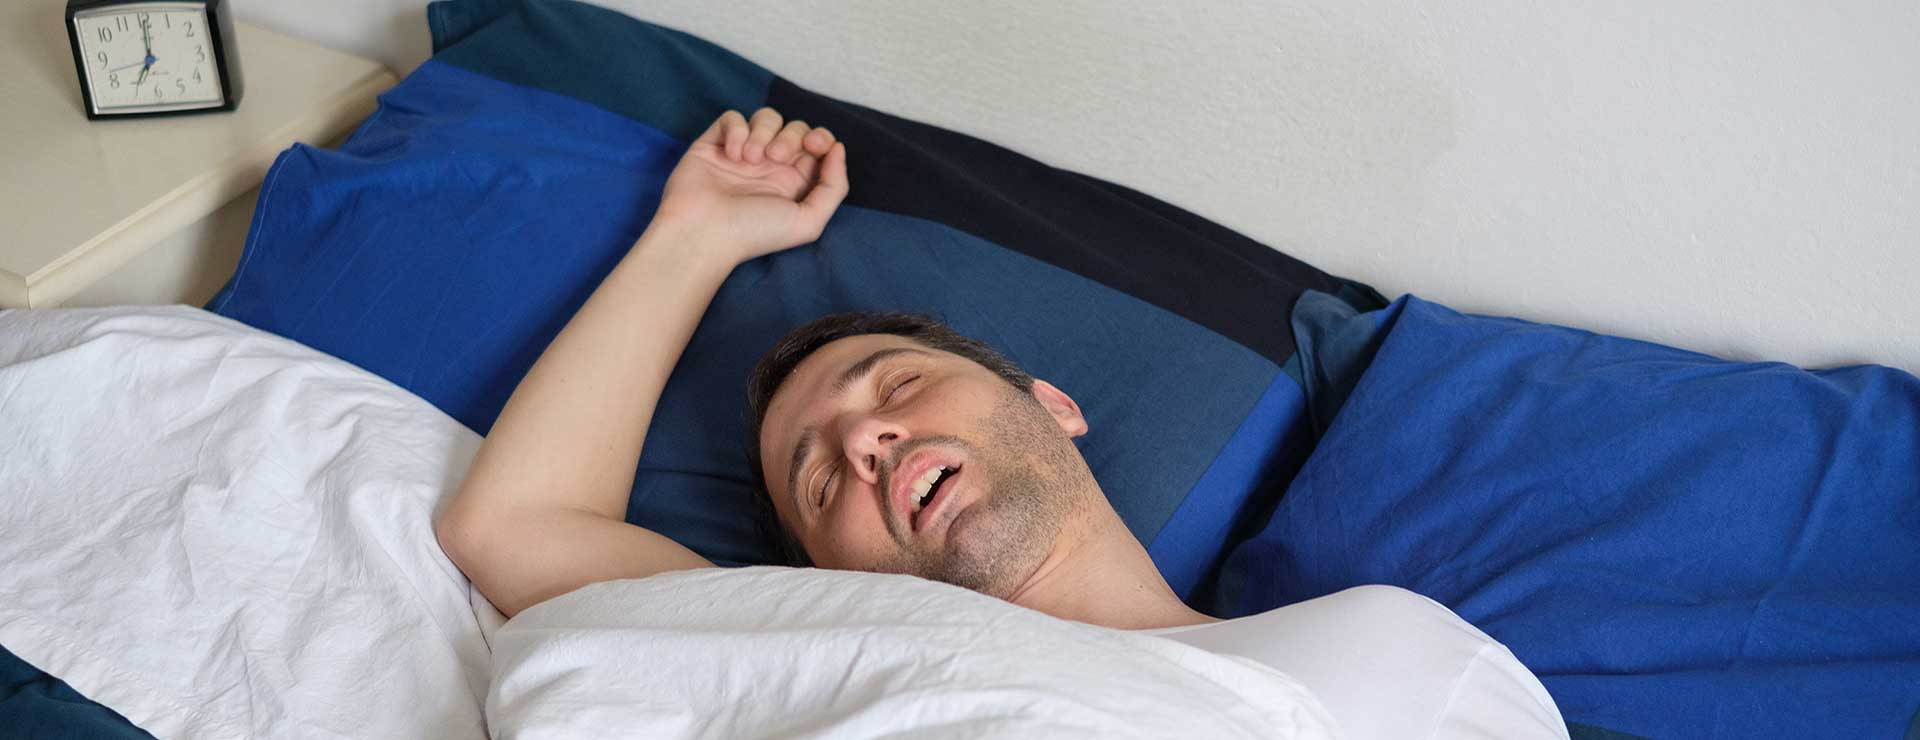 Why Do People Snore? Answers for Better Health   Johns Hopkins Medicine